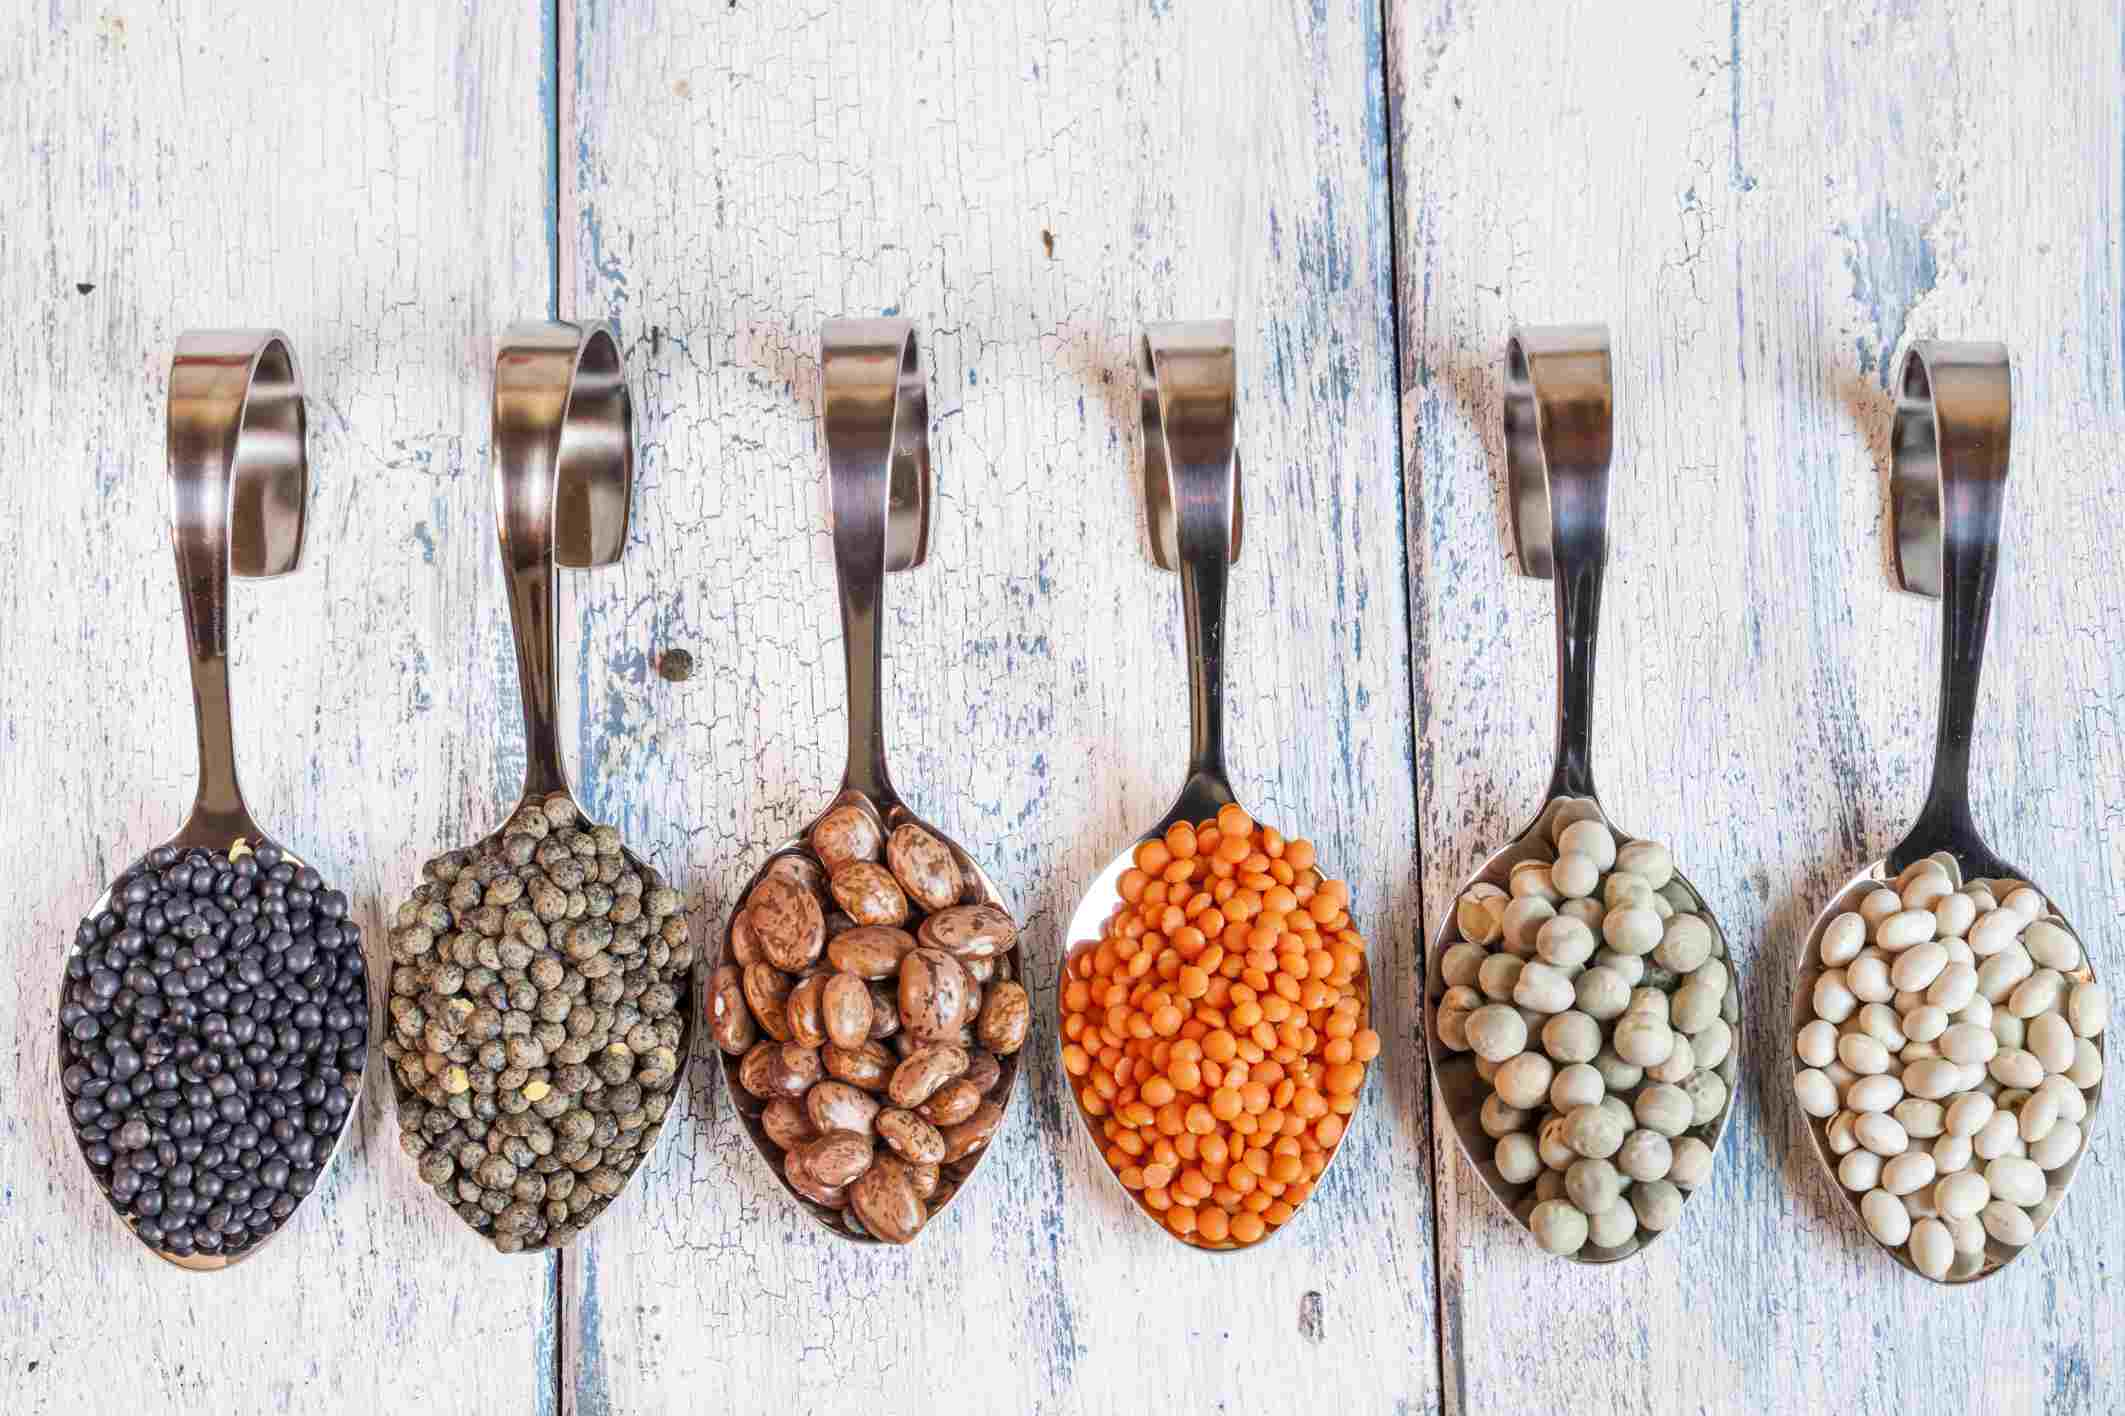 Legumes on different spoons